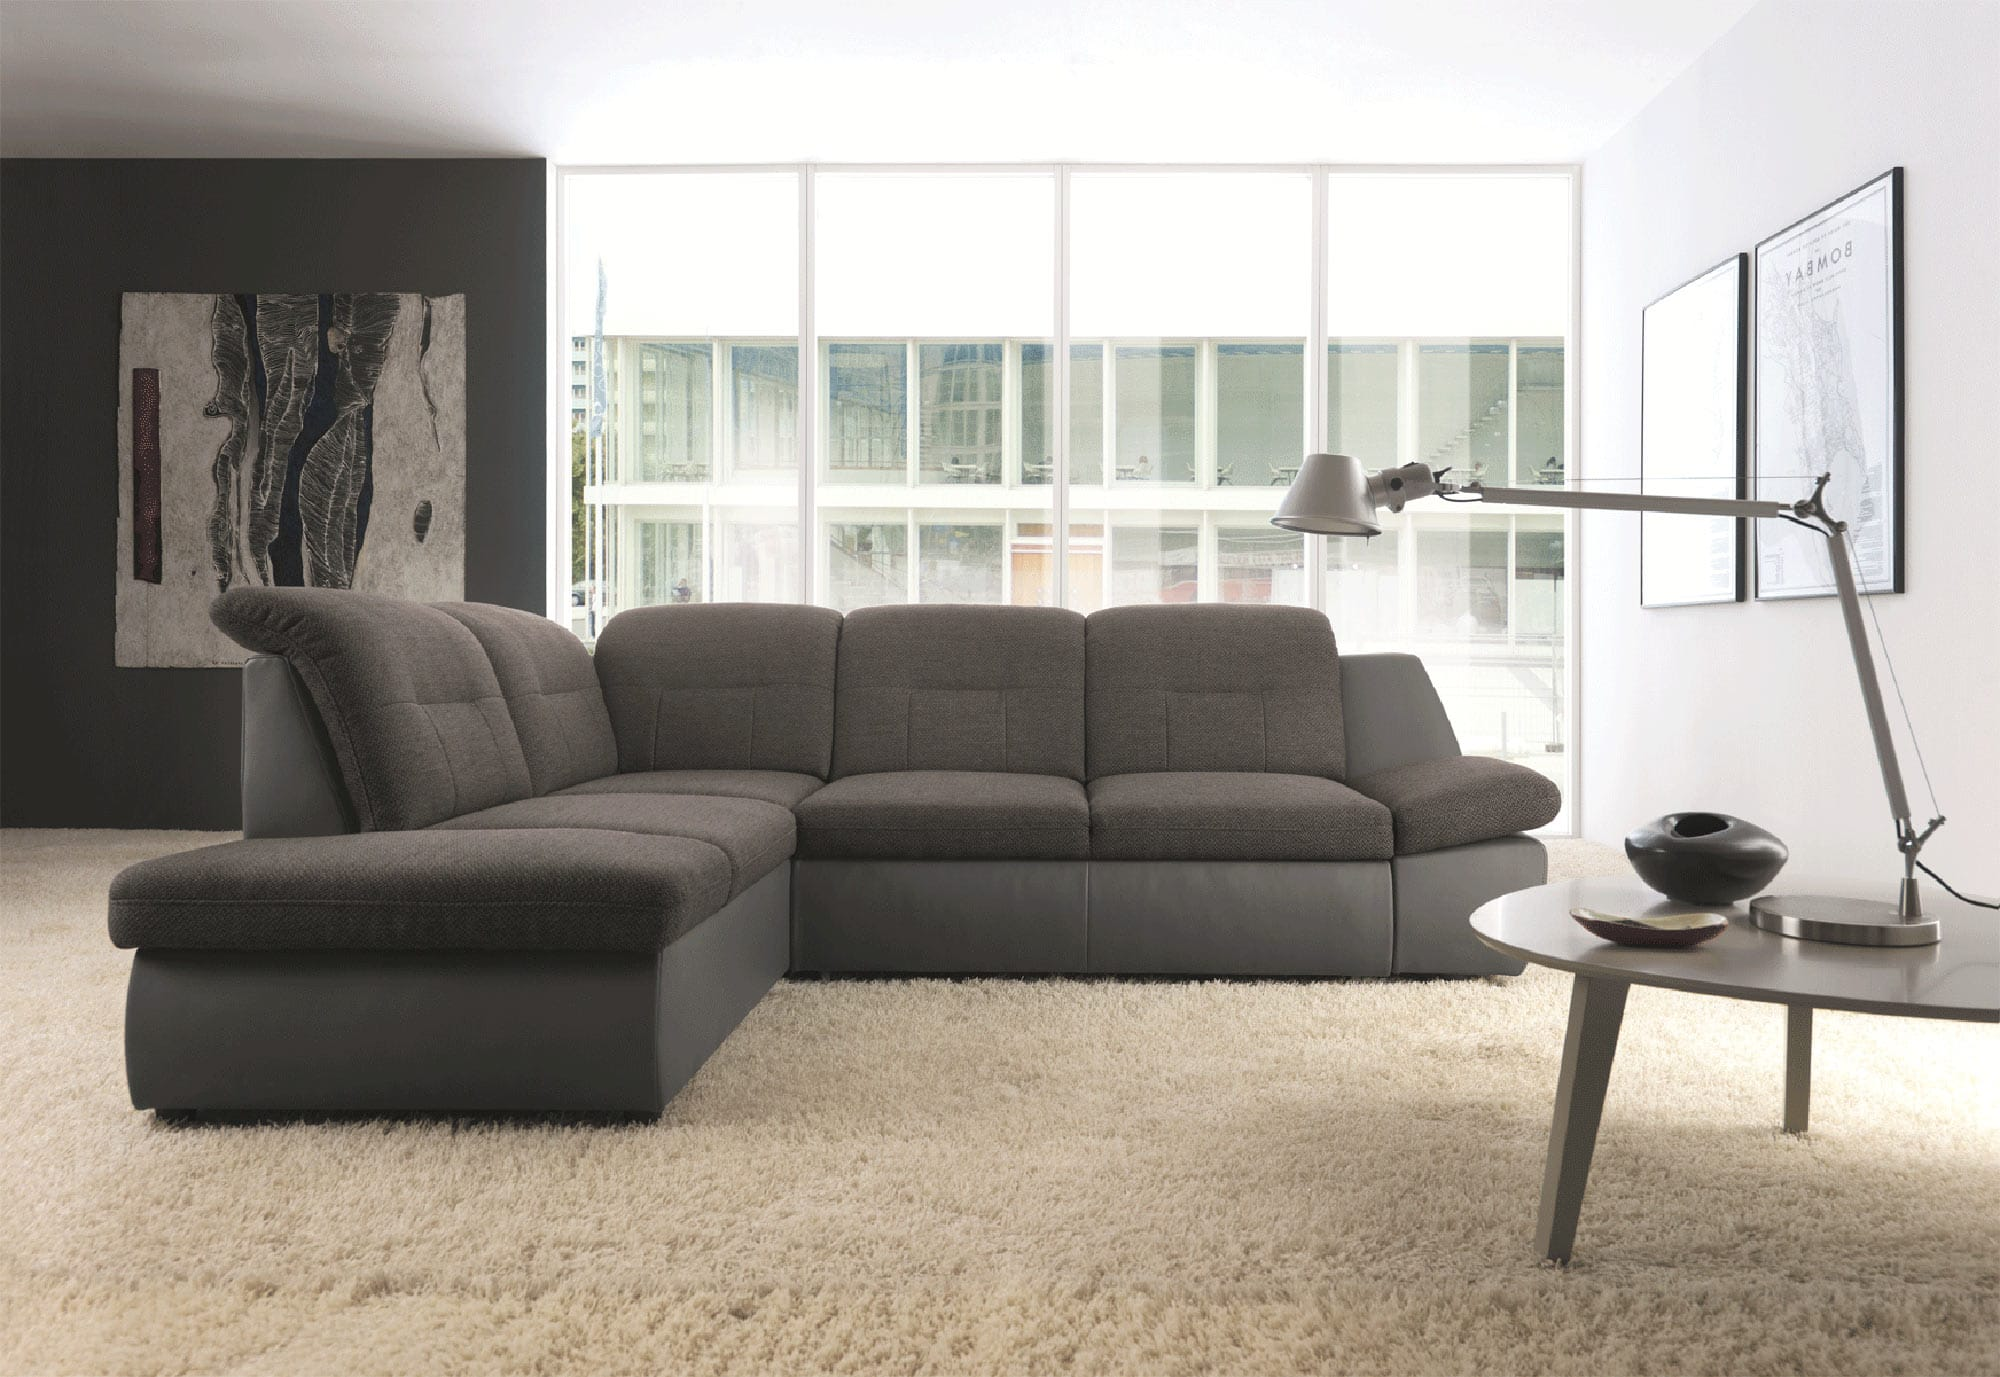 Tremendous Credo Sectional W Bed And Storage Left Facing By Esf Evergreenethics Interior Chair Design Evergreenethicsorg